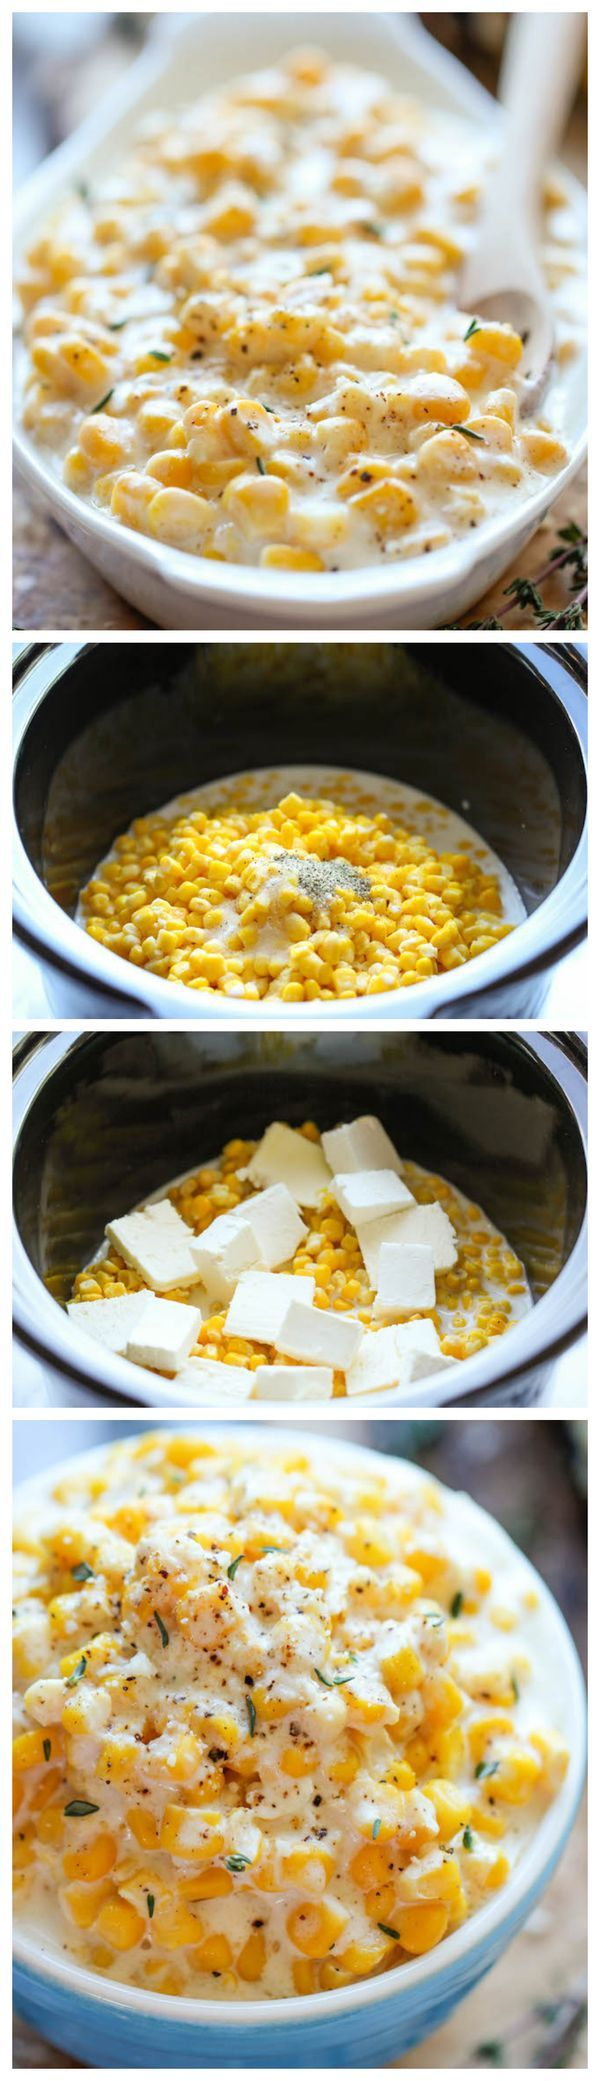 Slow Cooker Creamed Corn - Skipped the canned cream corn this year and make it from scratch right in the crockpot. It's so rich and creamy and unbelievably easy to make with just 5 ingredients!